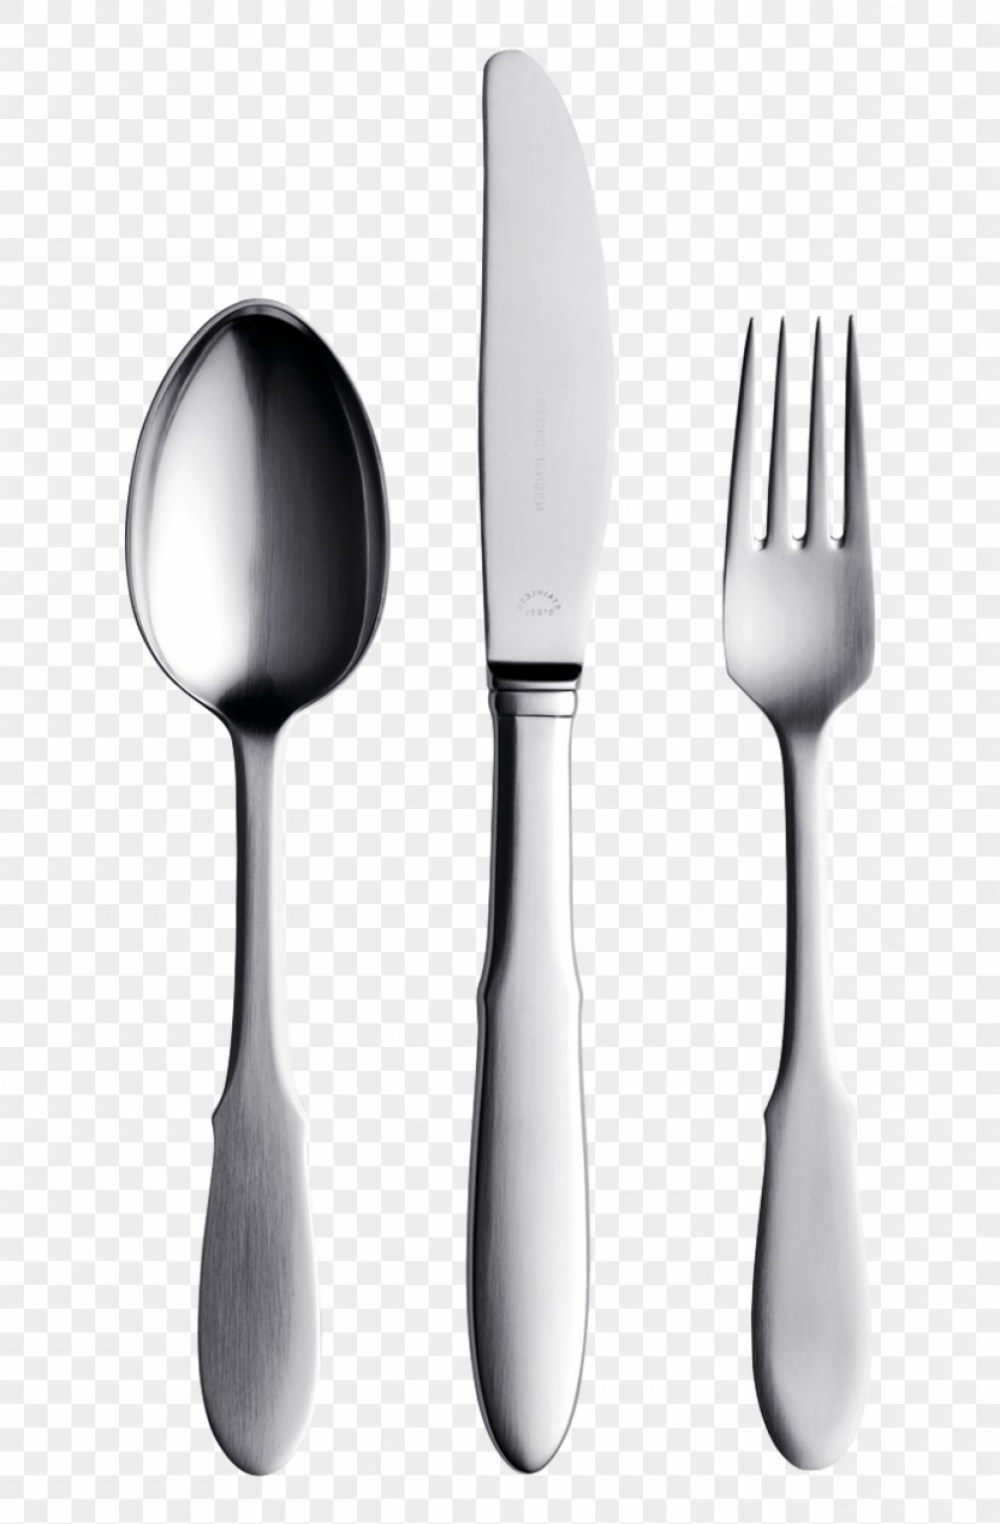 medium resolution of 1008x1537 fork drawing vector transparent arenawp knife and fork drawing